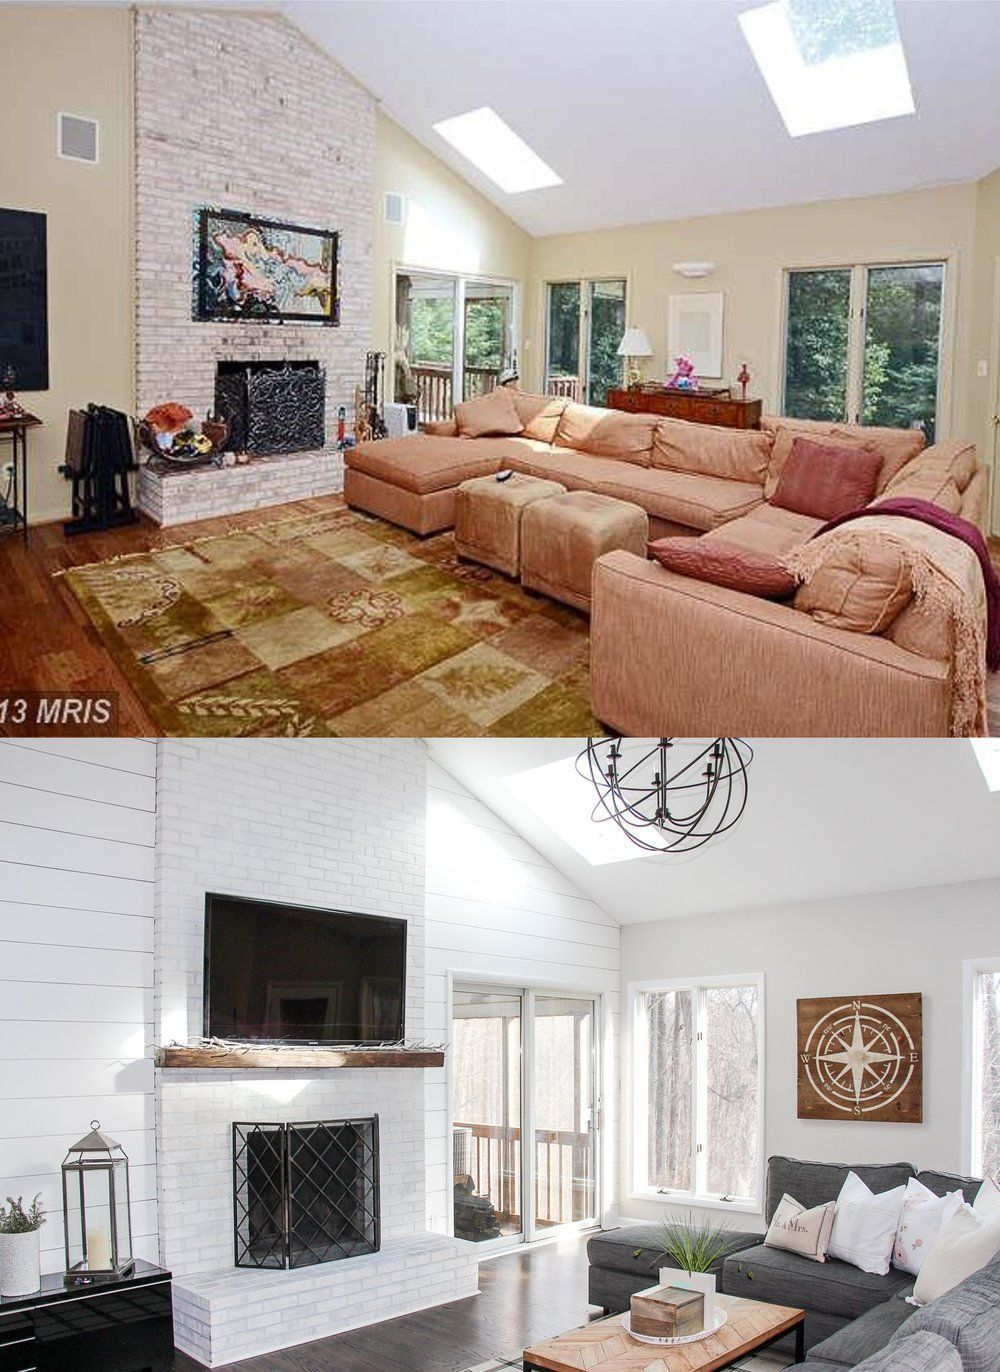 Living Room Renovation Before And After Vaulted Ceiling Living Room Shiplap Wall L Vaulted Living Rooms Farm House Living Room Modern Farmhouse Living Room